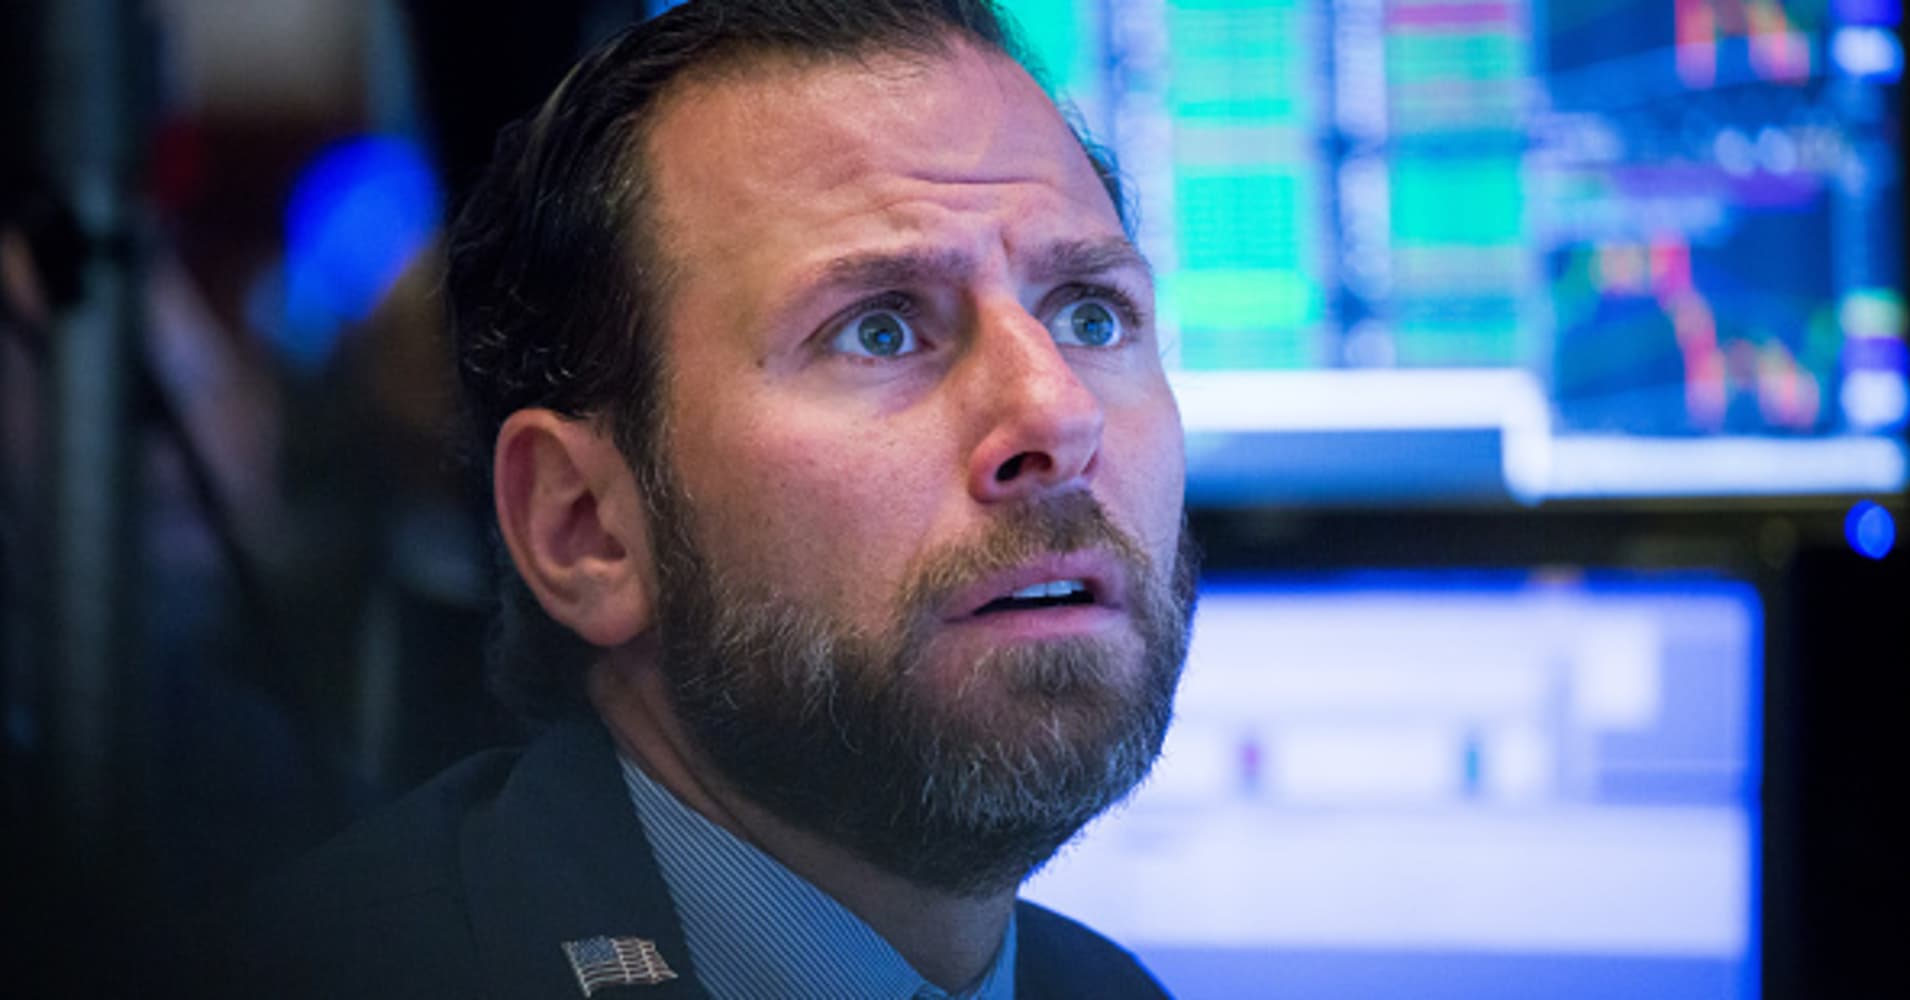 The Dow may drop another 2,000 points before the stock market selling is done: CNBC CFO survey